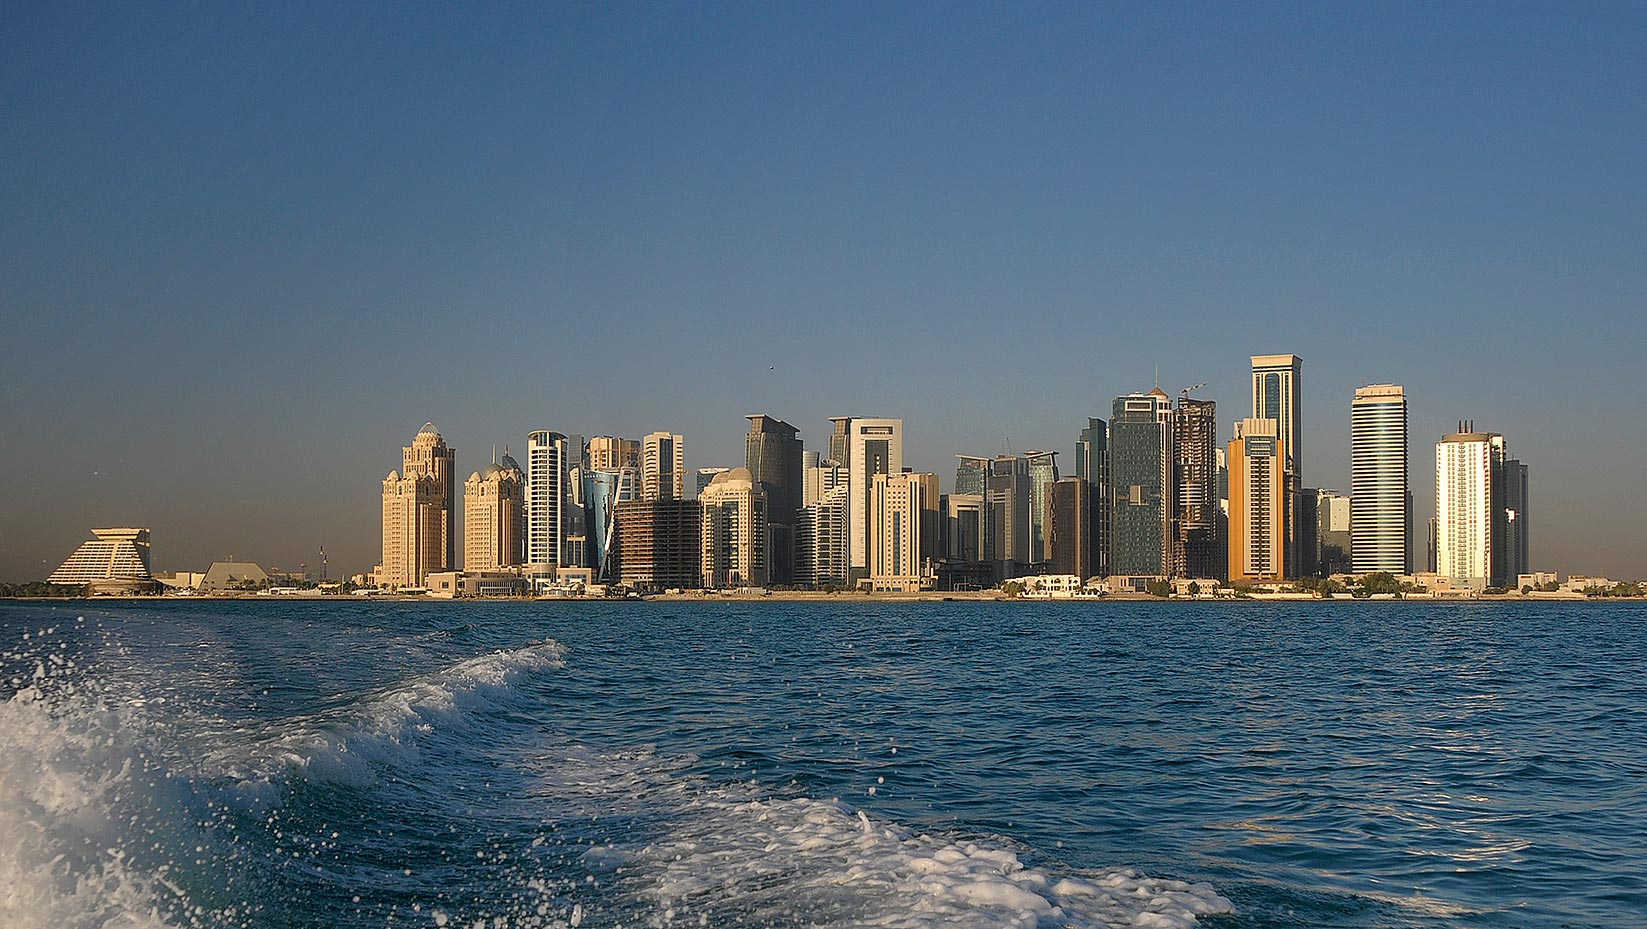 View of West Bay area in Doha from a boat. Qatar